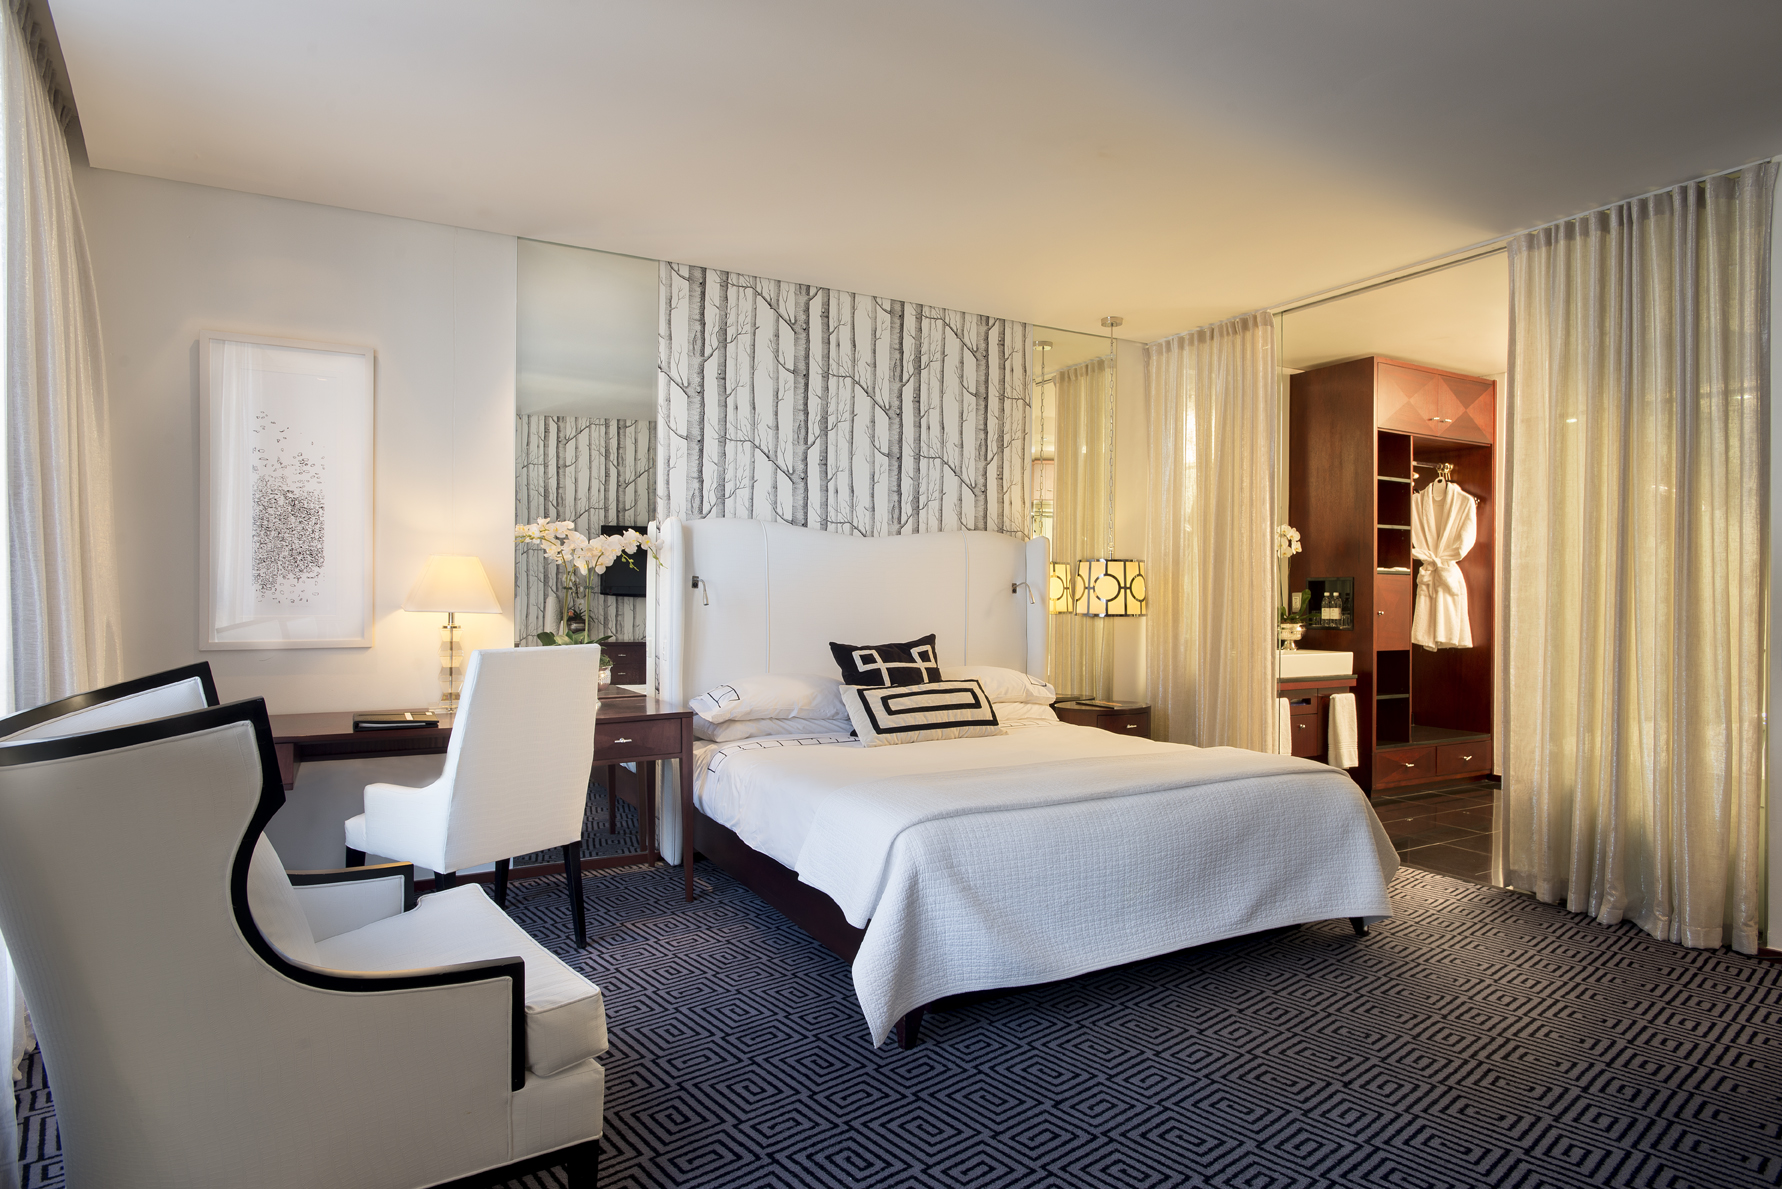 Which hotels have two bedroom suites modern home interior ideas Two bedroom hotels in chicago